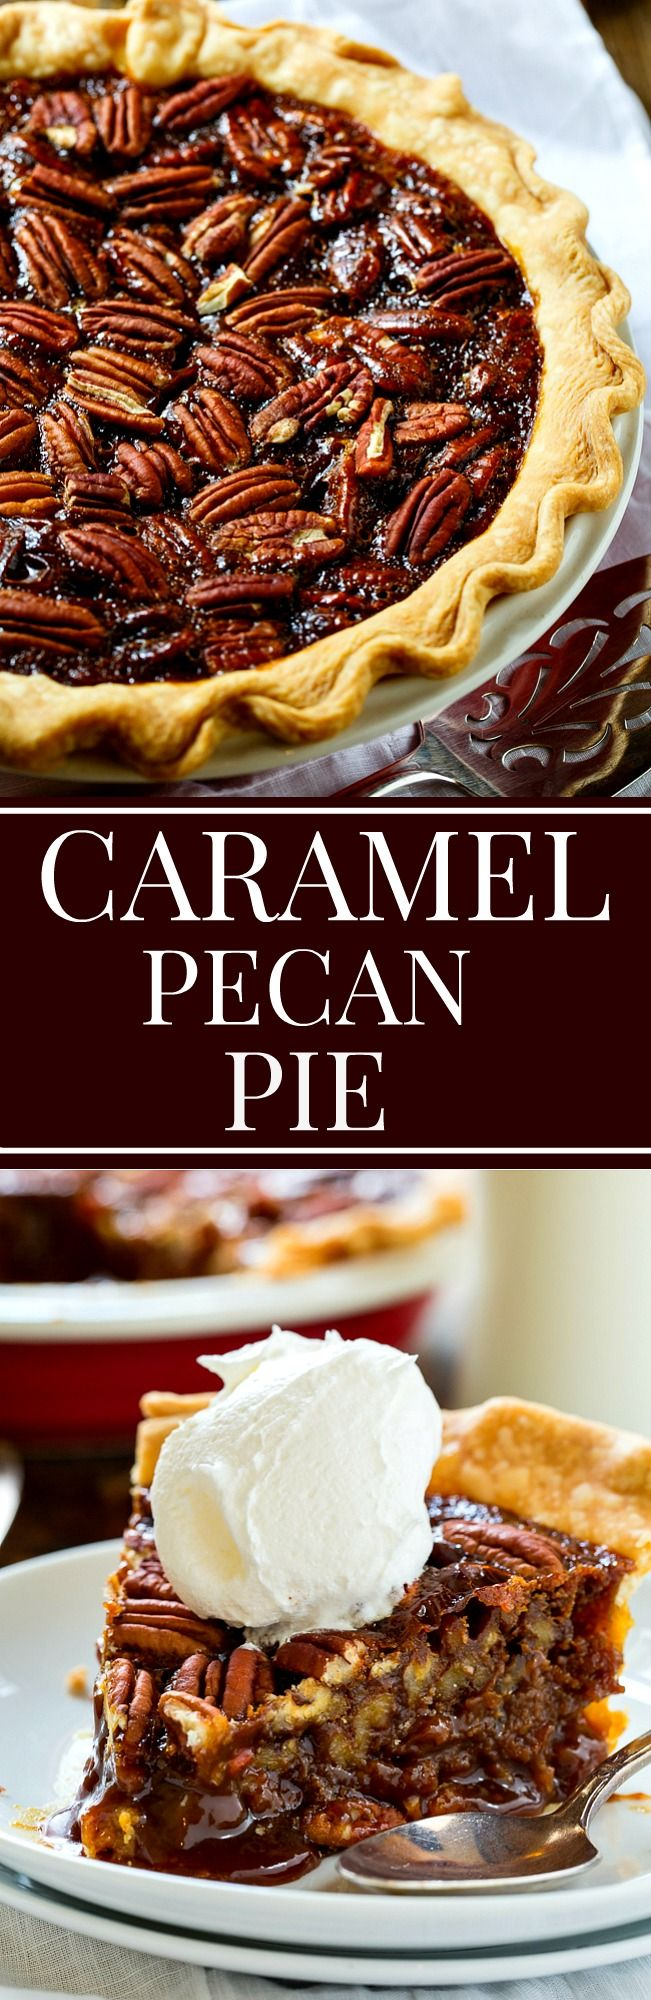 This Pecan Pie has a deep caramel flavor and a teaspoon of sea salt accentuates the flavor and creates that winning sweet/salty combo.